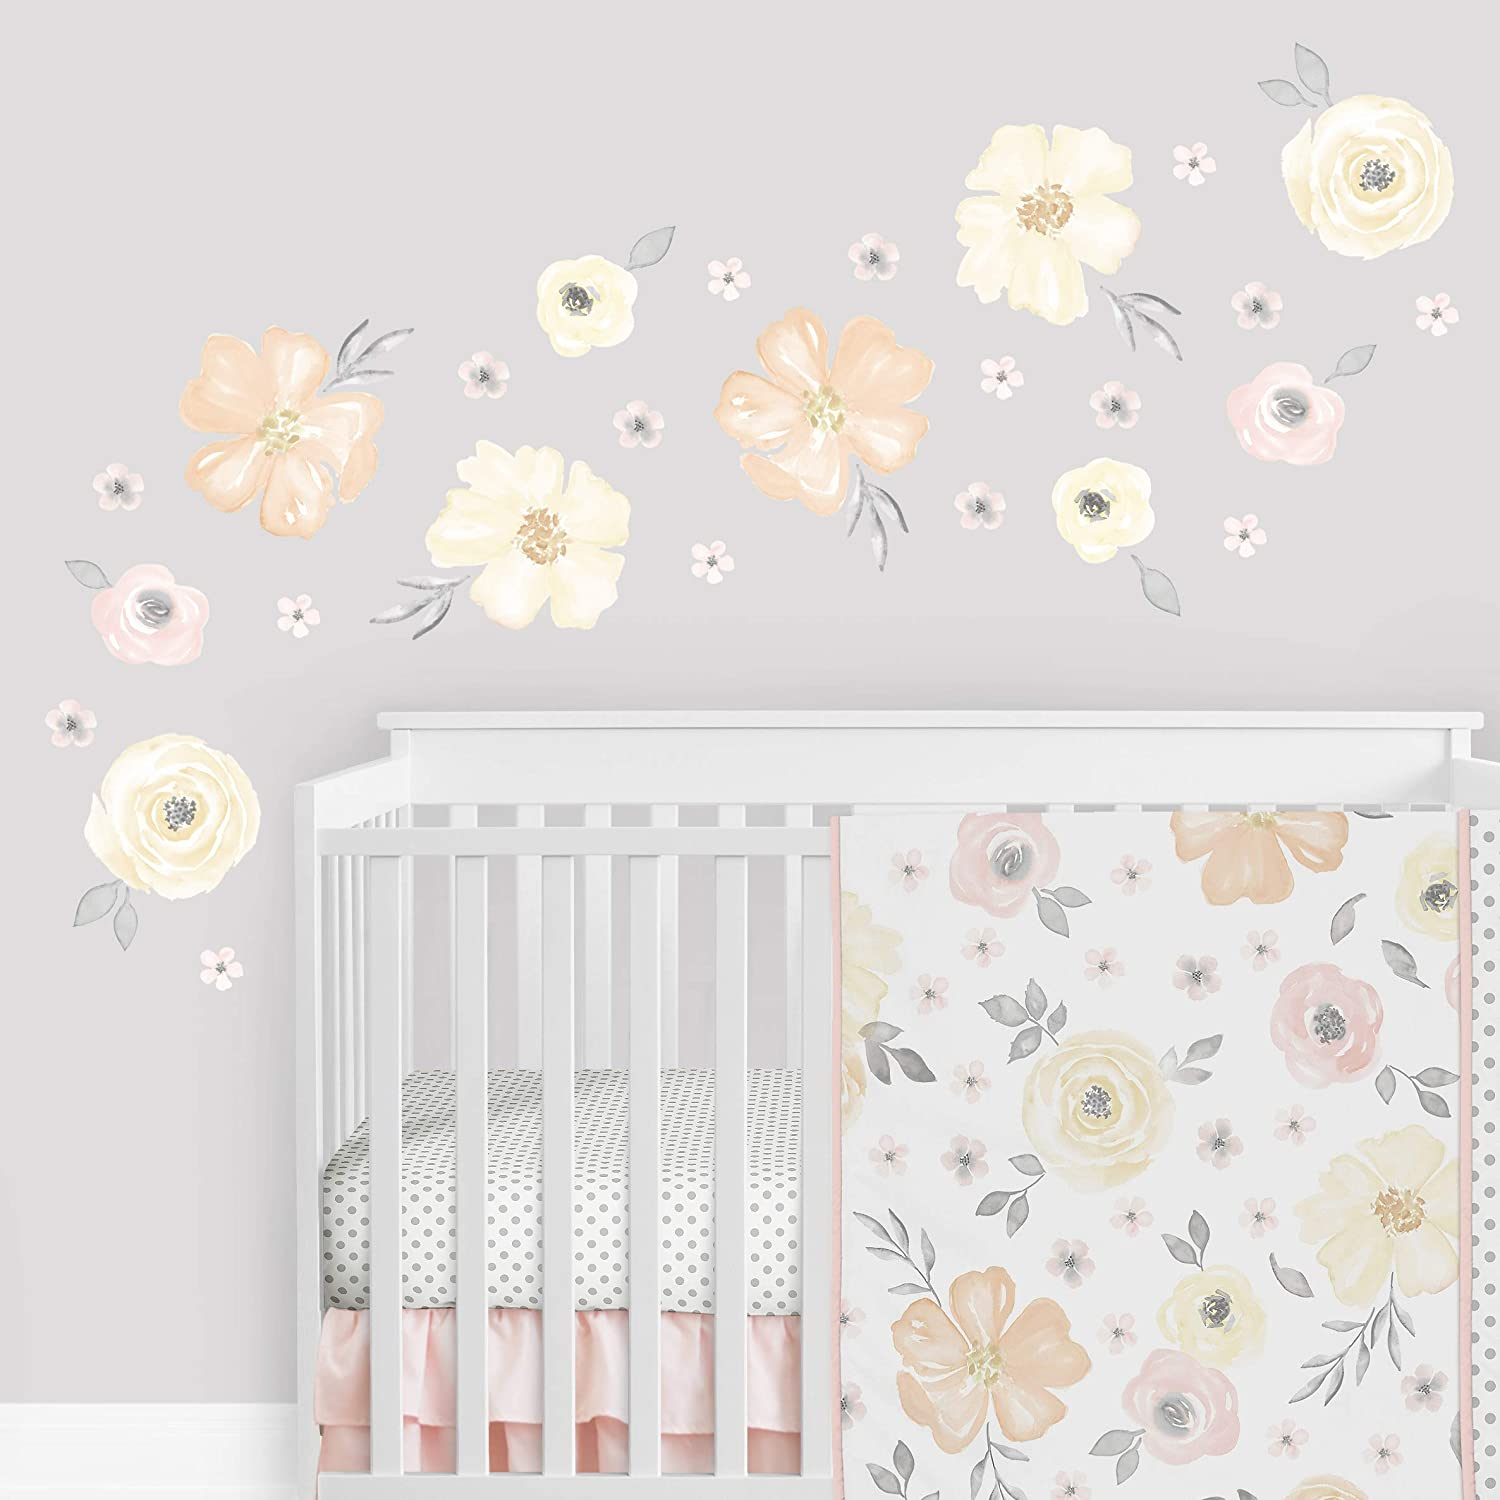 Sweet Jojo Designs Yellow Pink Watercolor Floral Wall Decal Large Peel and Stick Stickers Art Nursery Decor Mural Set of 4 Sheets Blush Peach Orange Cream Grey White Shabby Chic Rose Flower Farmhouse